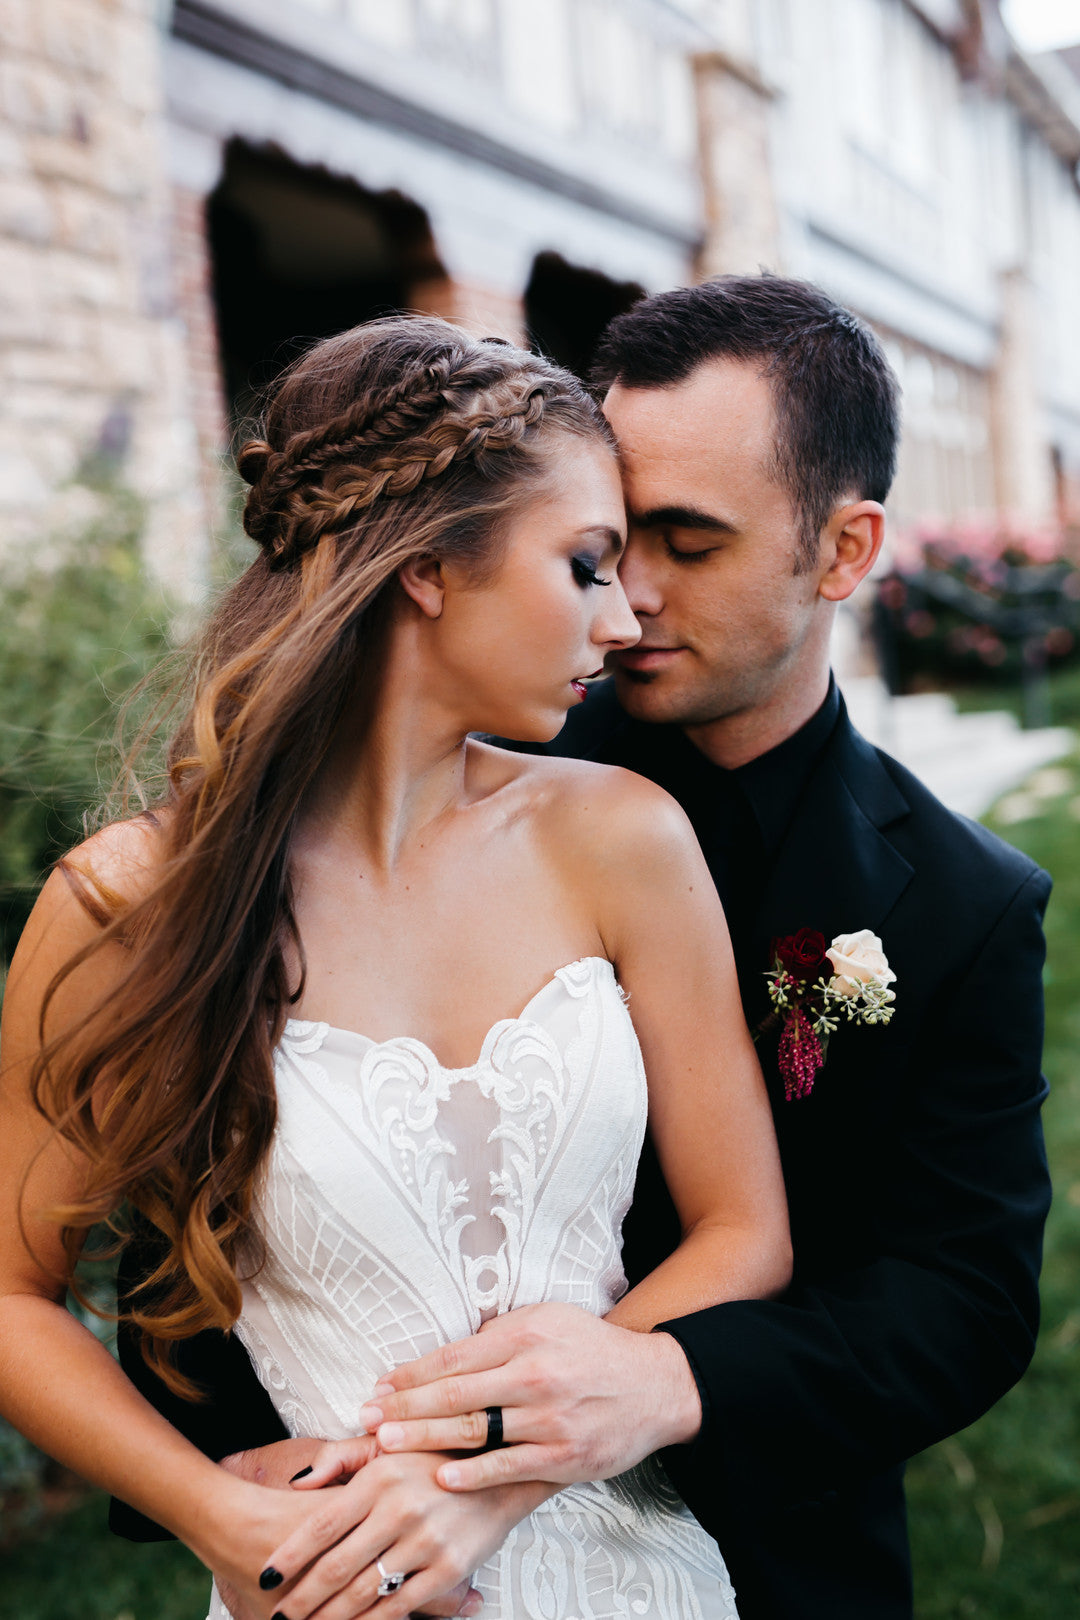 Bride And Groom Embracing | A Vintage Gothic Halloween Wedding | Kate Aspen